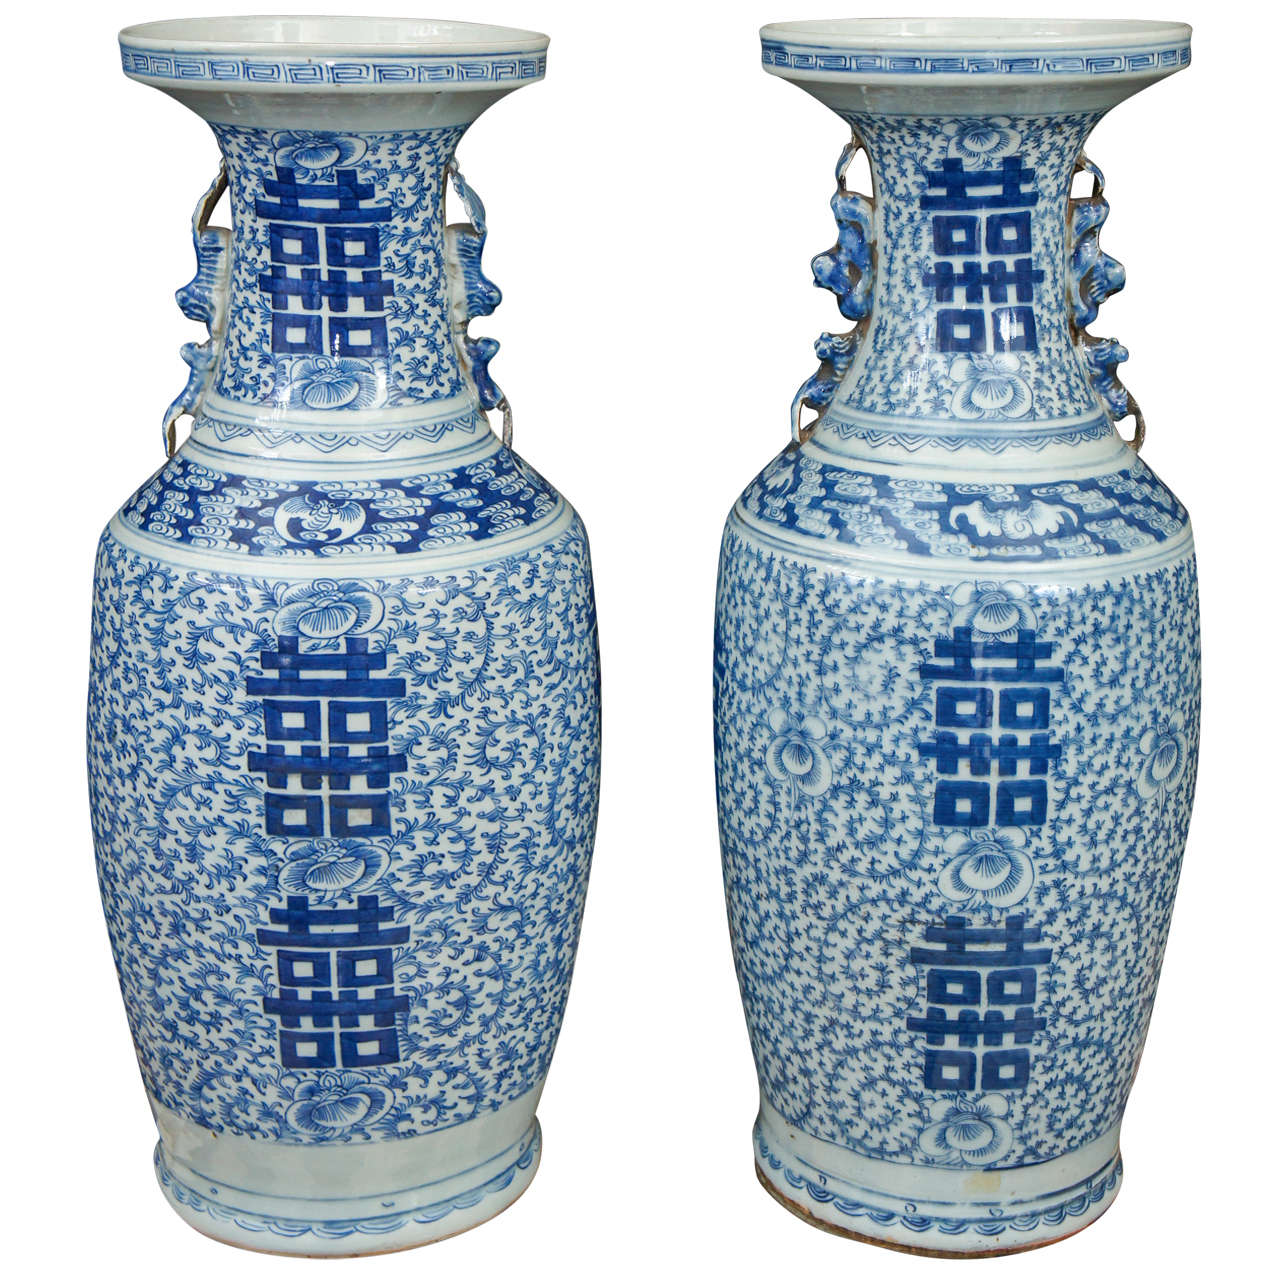 Large antique chinese celadon blue and white vase 19th century pair of 19th century porcelain blue and white double happiness chinese vases reviewsmspy